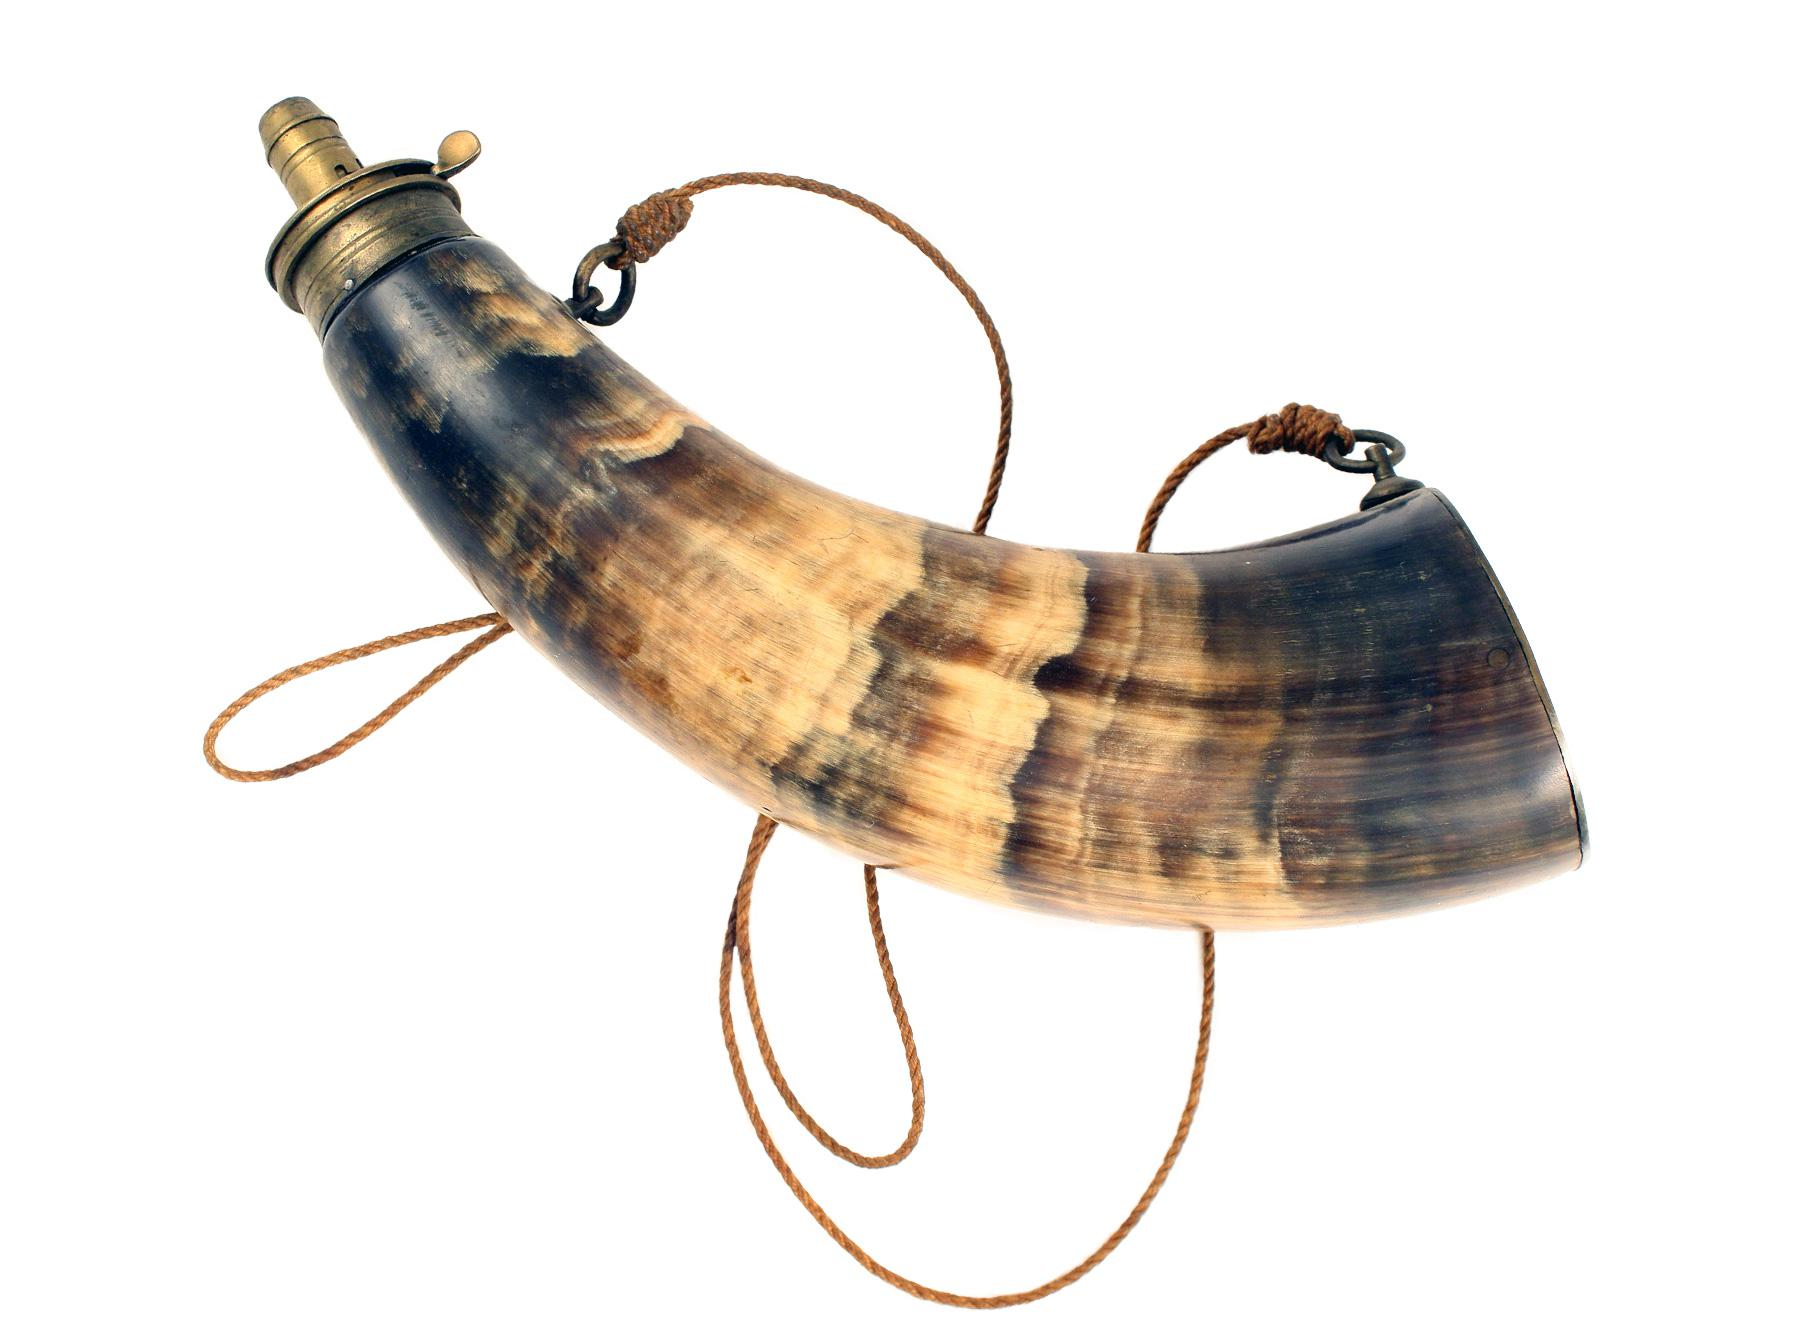 A 'Patent' Powder Horn